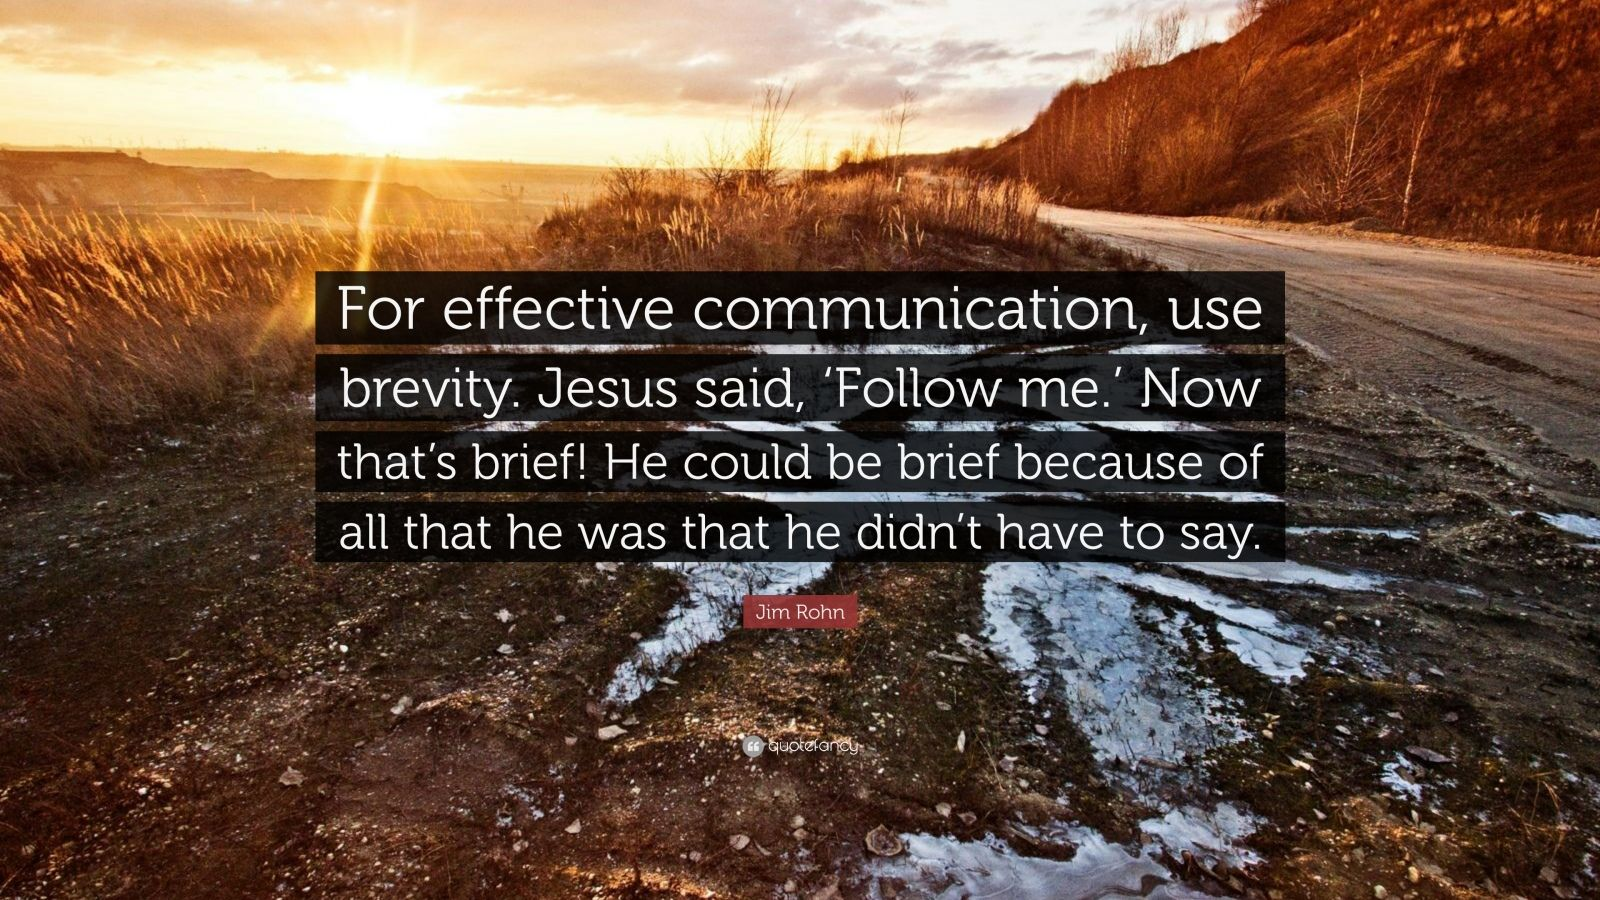 """Jim Rohn Quote: """"For effective communication, use brevity. Jesus said, 'Follow me.' Now that's brief! He could be brief because of all that he was that he didn't have to say."""""""